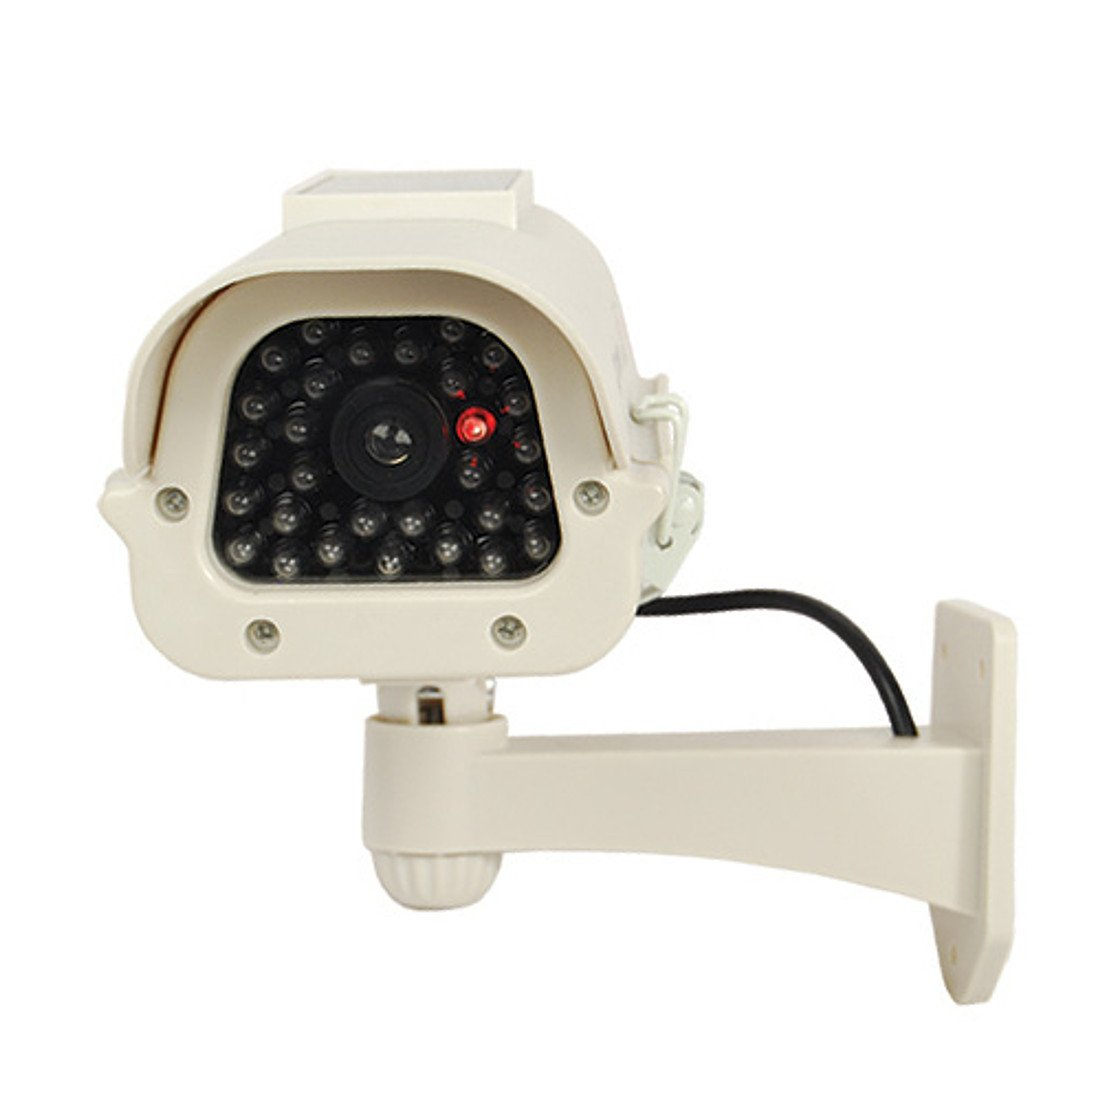 Fake Security Camera, Best Outdoor Security Camera System, Features Dummy Security Camera, Solar Powered & LED Light, Includes 2 Rechargeable AA Batteries, Satisfaction Guarantee (Off-White).